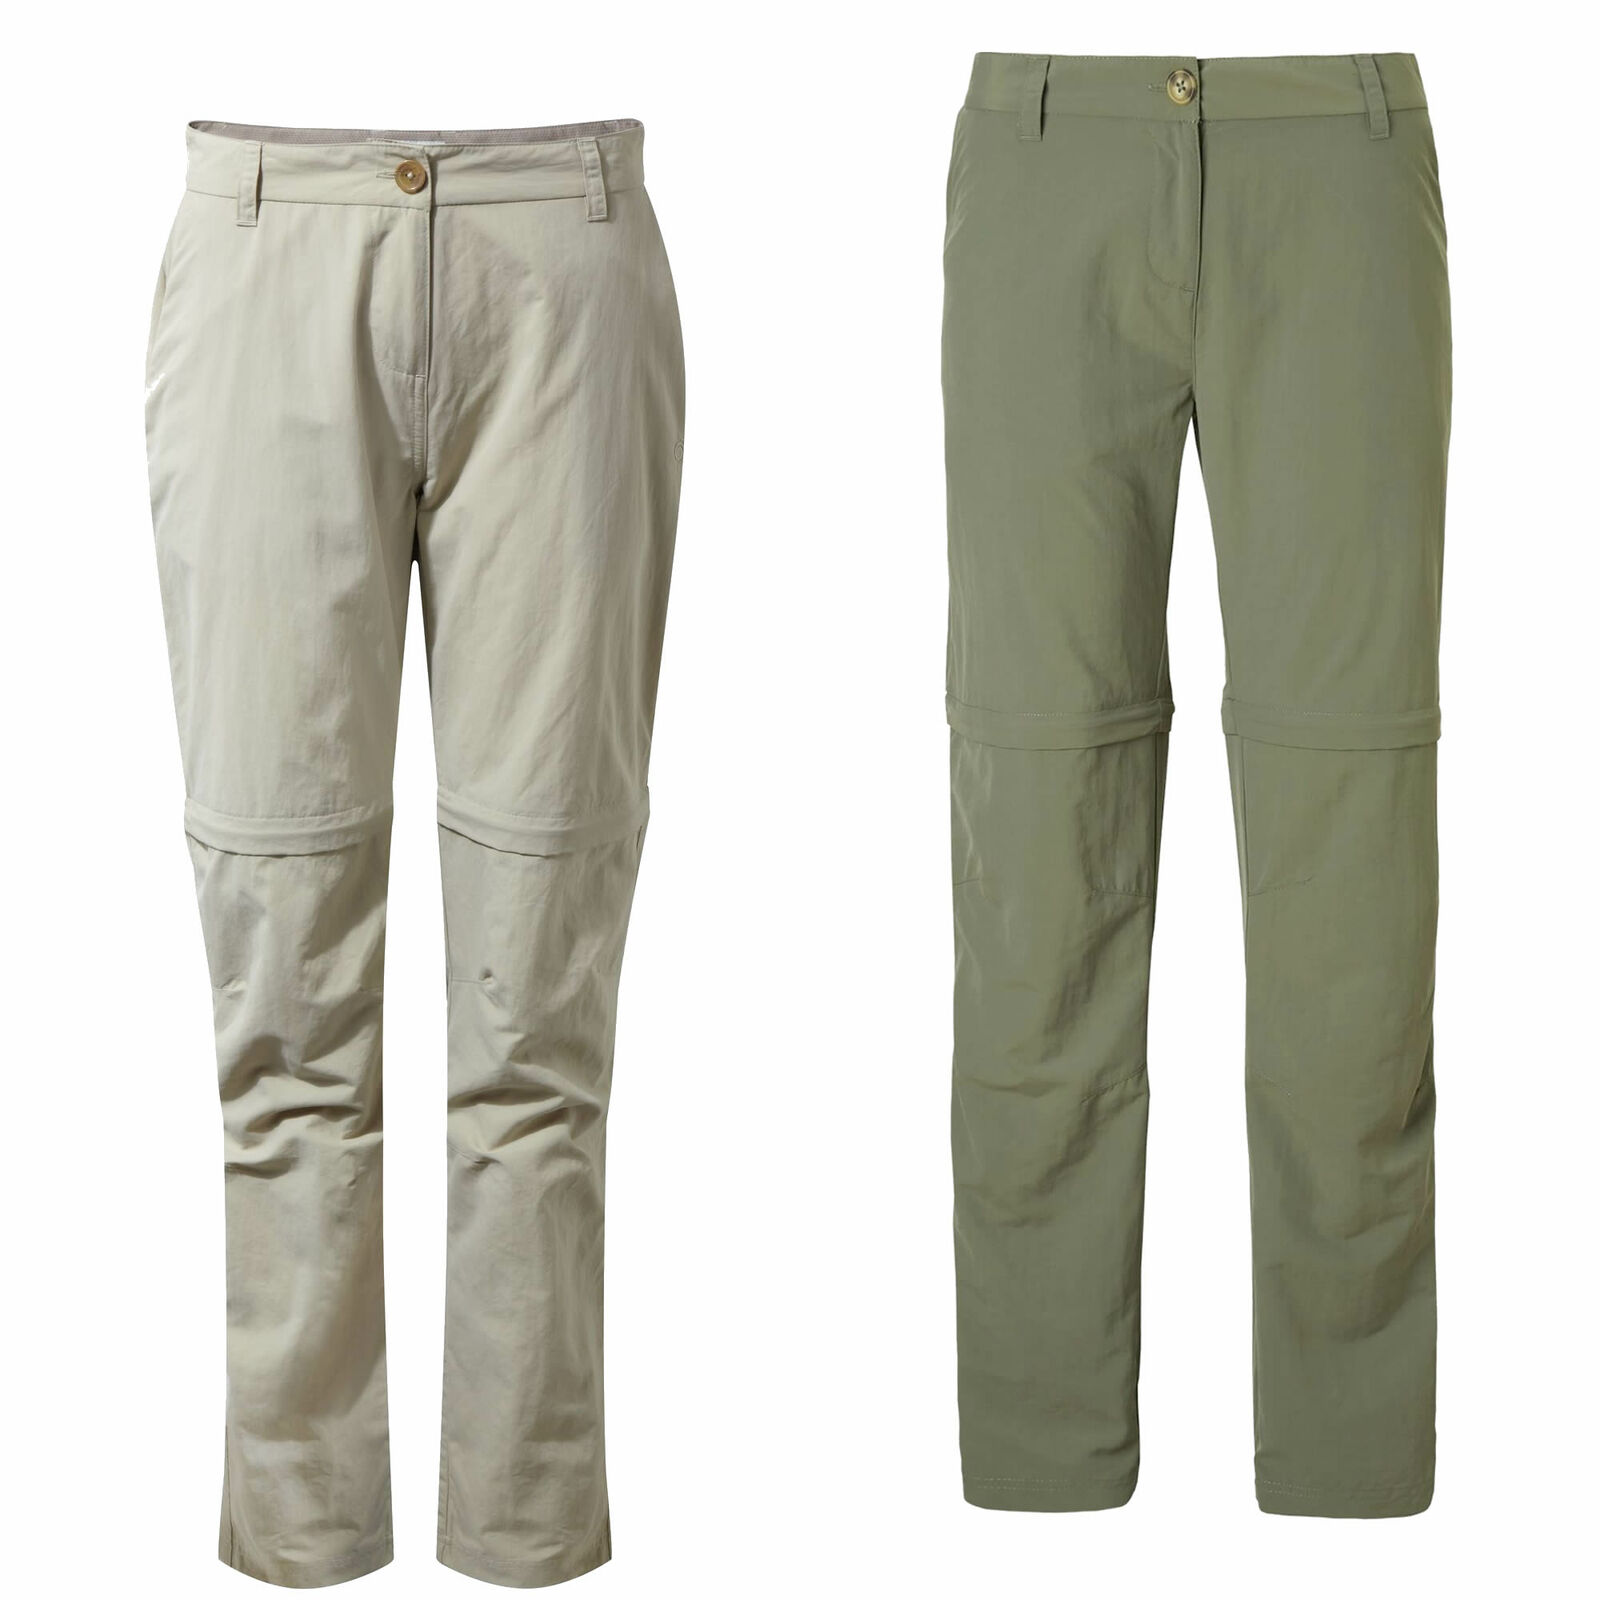 Craghoppers NosiLife III Congreenible Womens Trousers Insect Repellent Travel